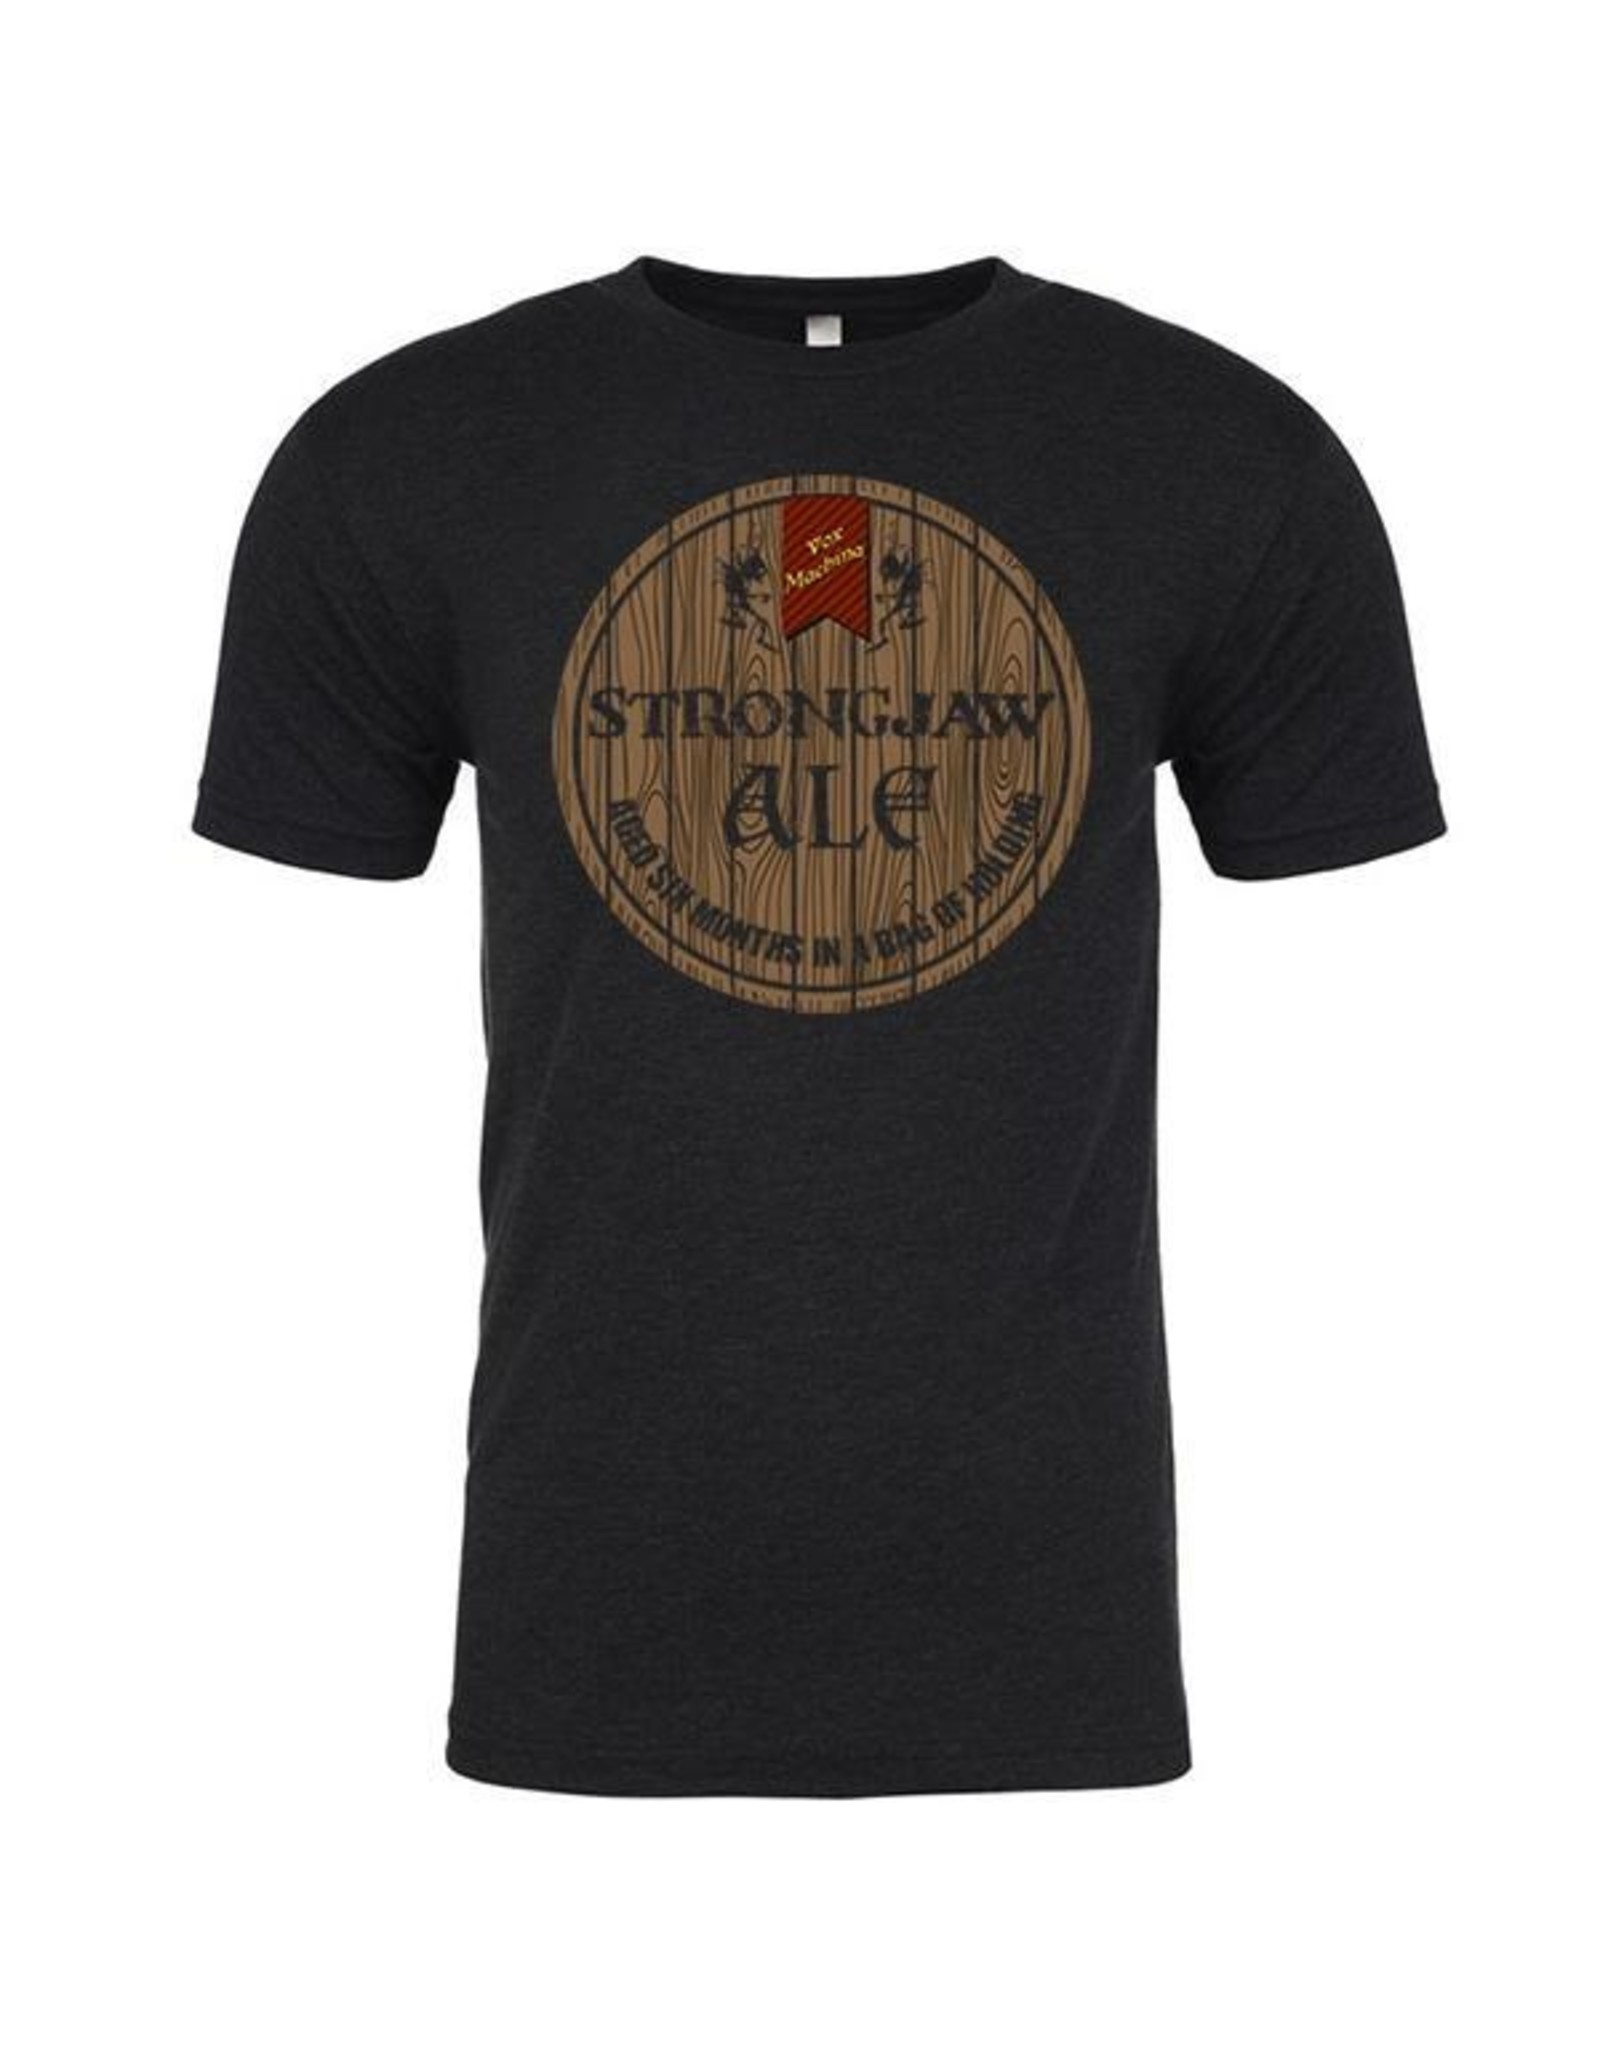 Critical Role Strongjaw Ale T-Shirt (Large)